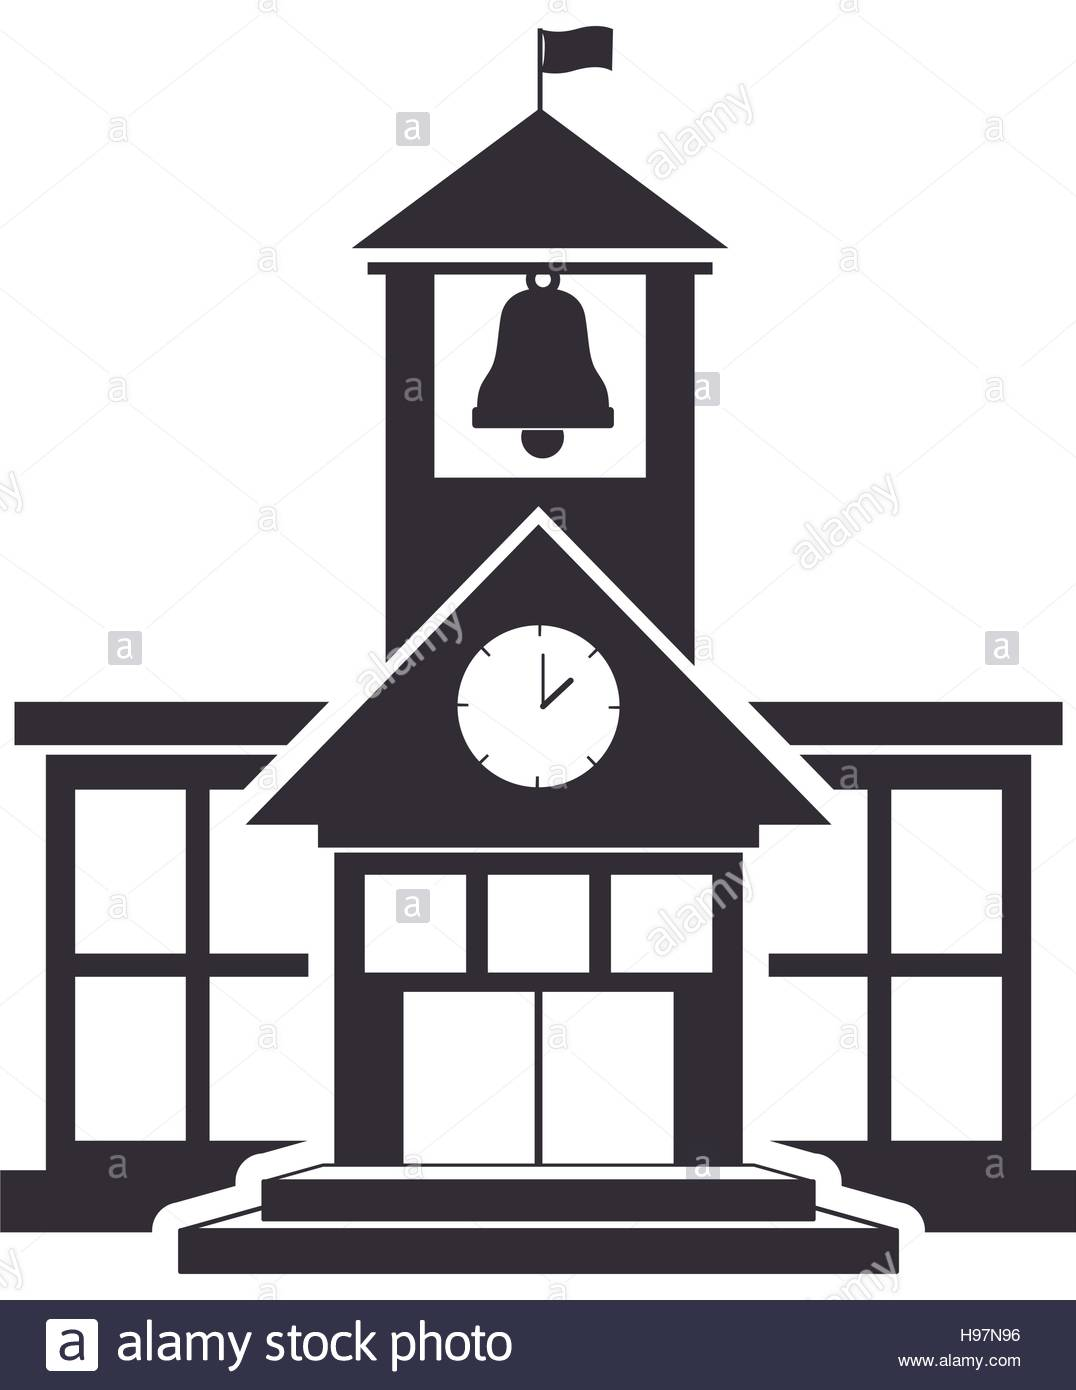 1076x1390 Black silhouette high school structure with large windows Stock